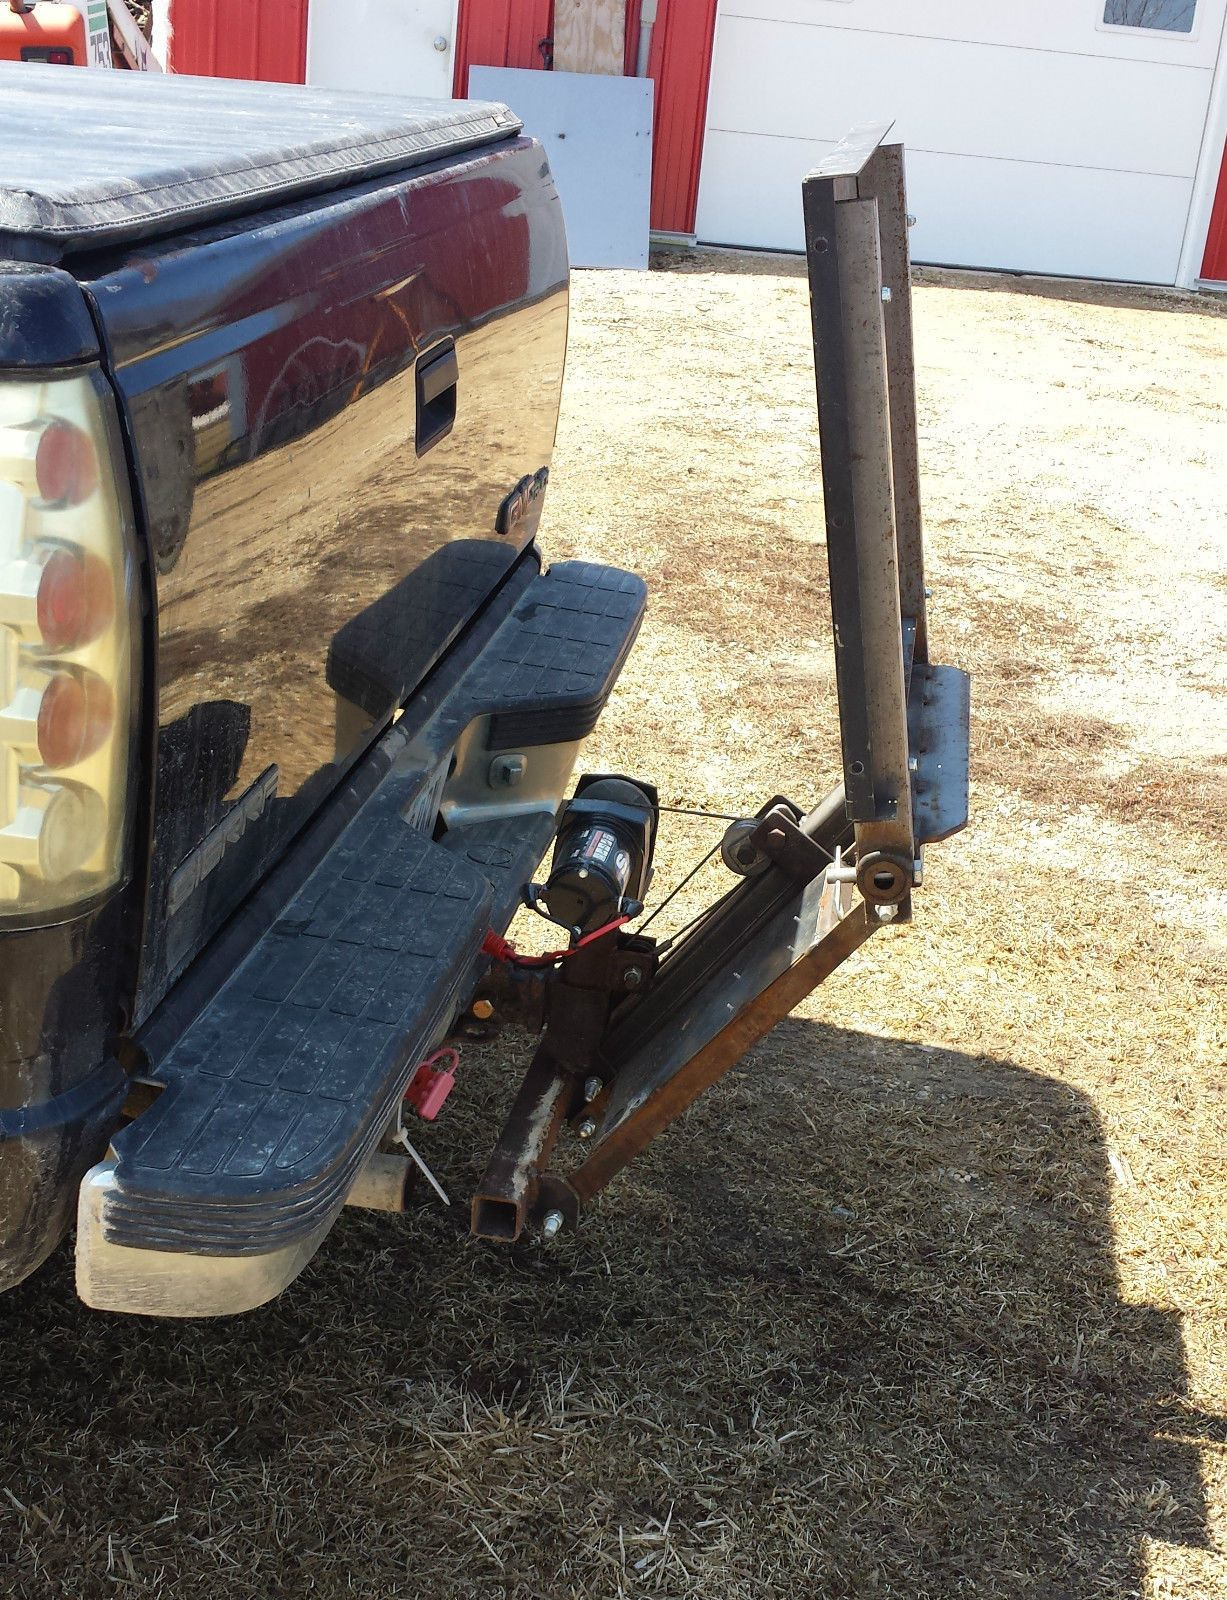 Hitch lift plans build for low $ back saver cargo tailgate lift gate